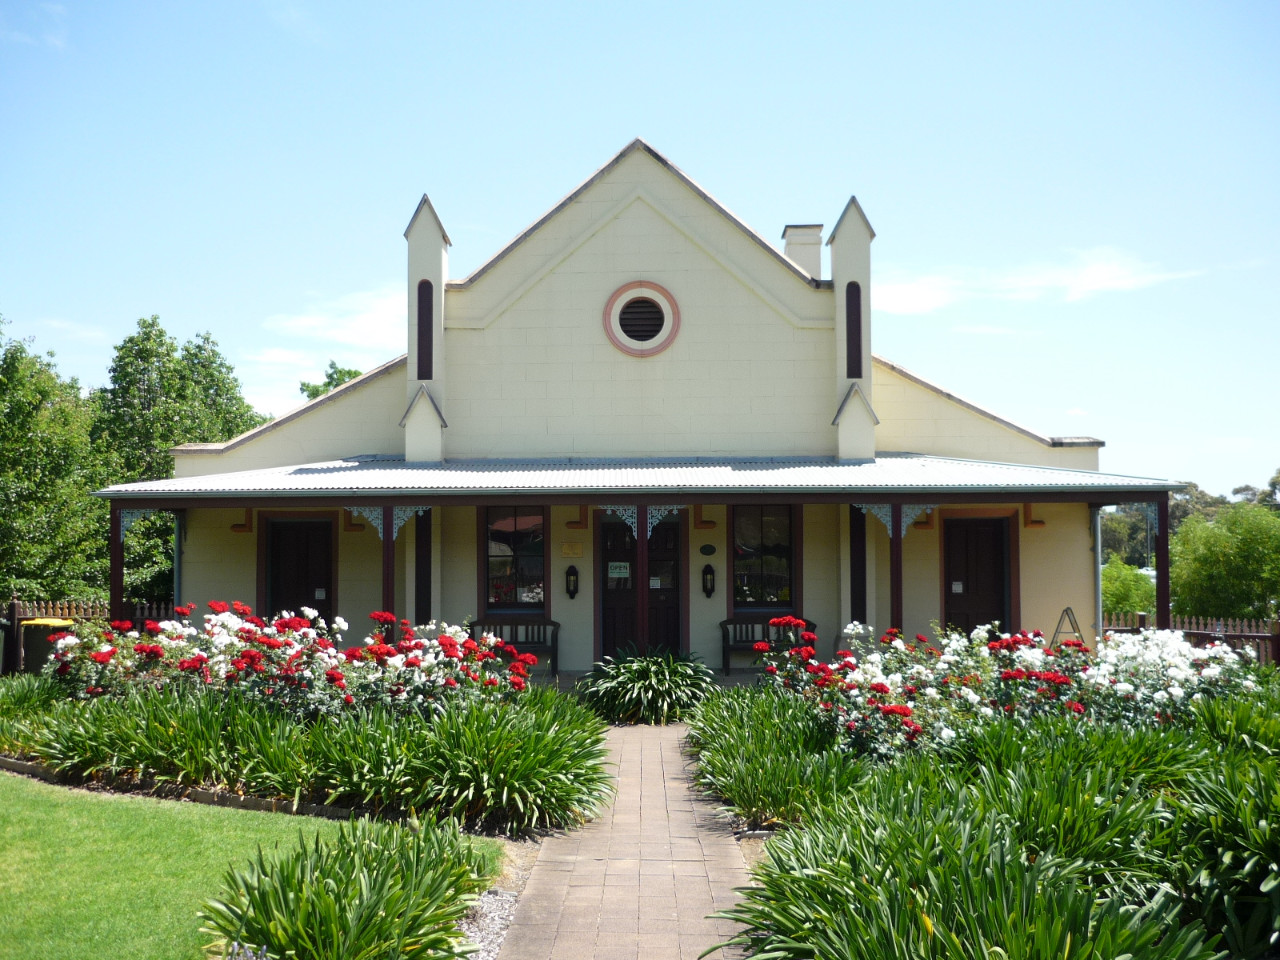 Campbelltown Visitor Information Centre - Quondong Cottage